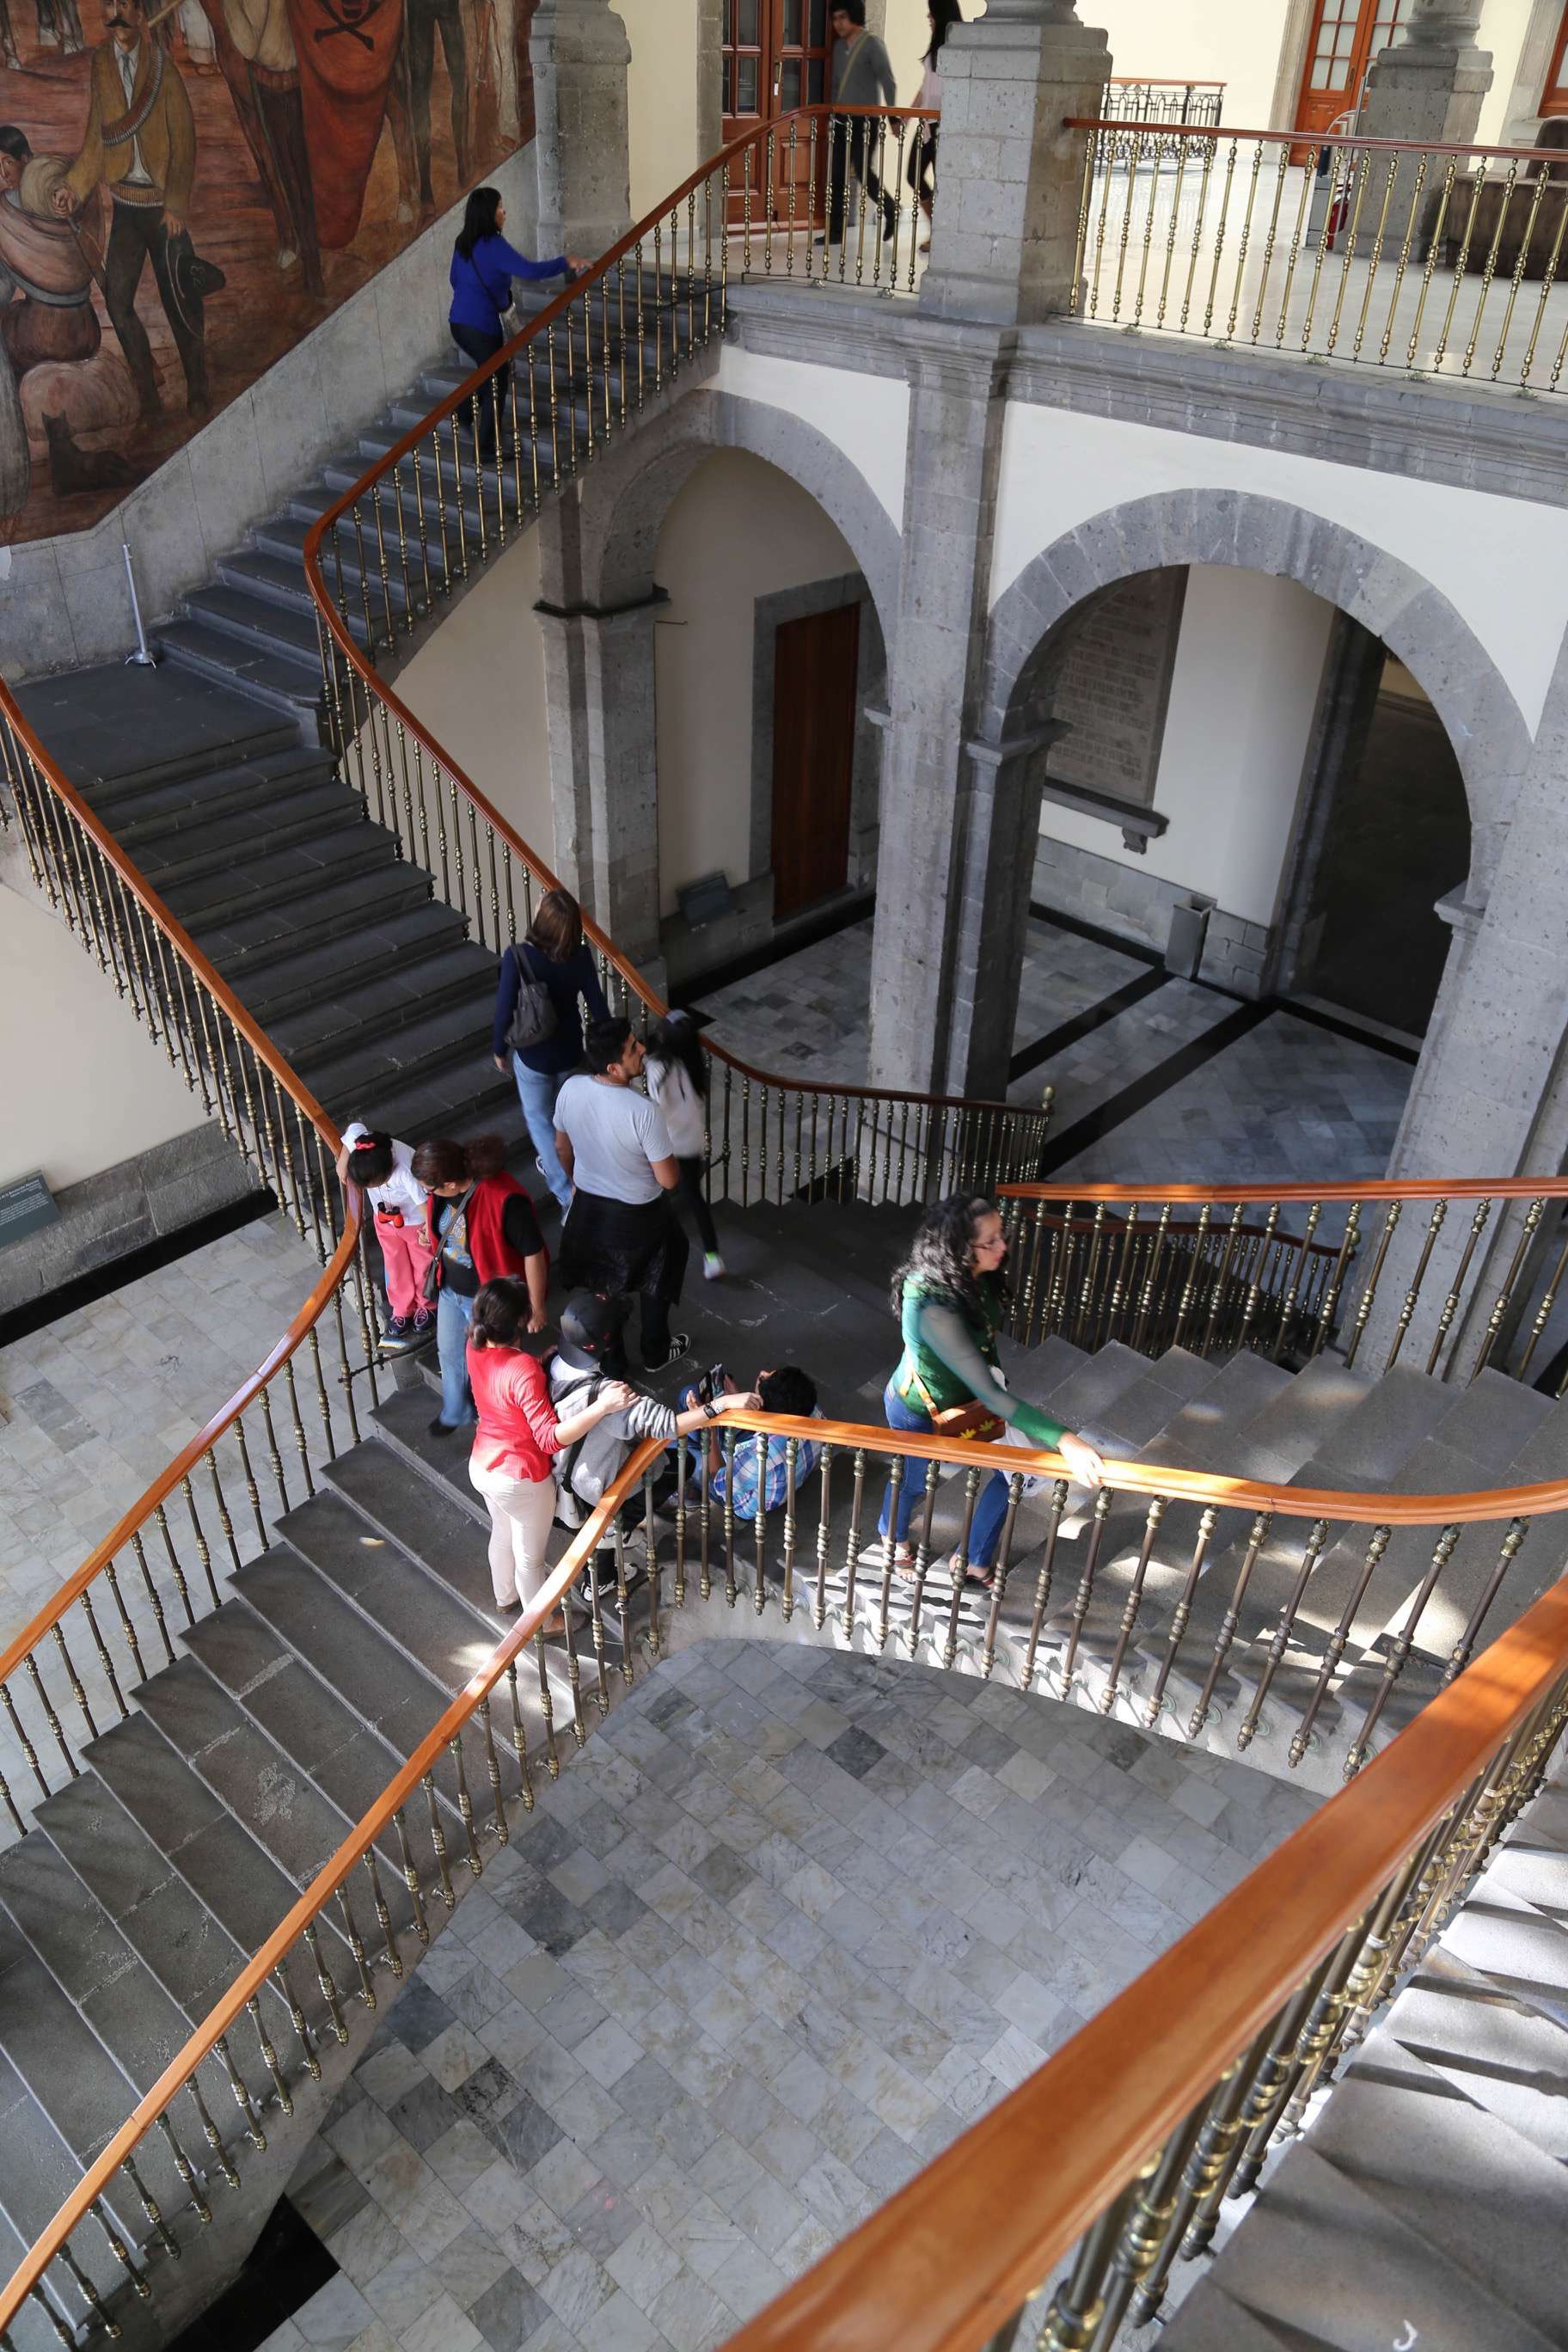 Staircases wend their way together at Chapultepec Castle.